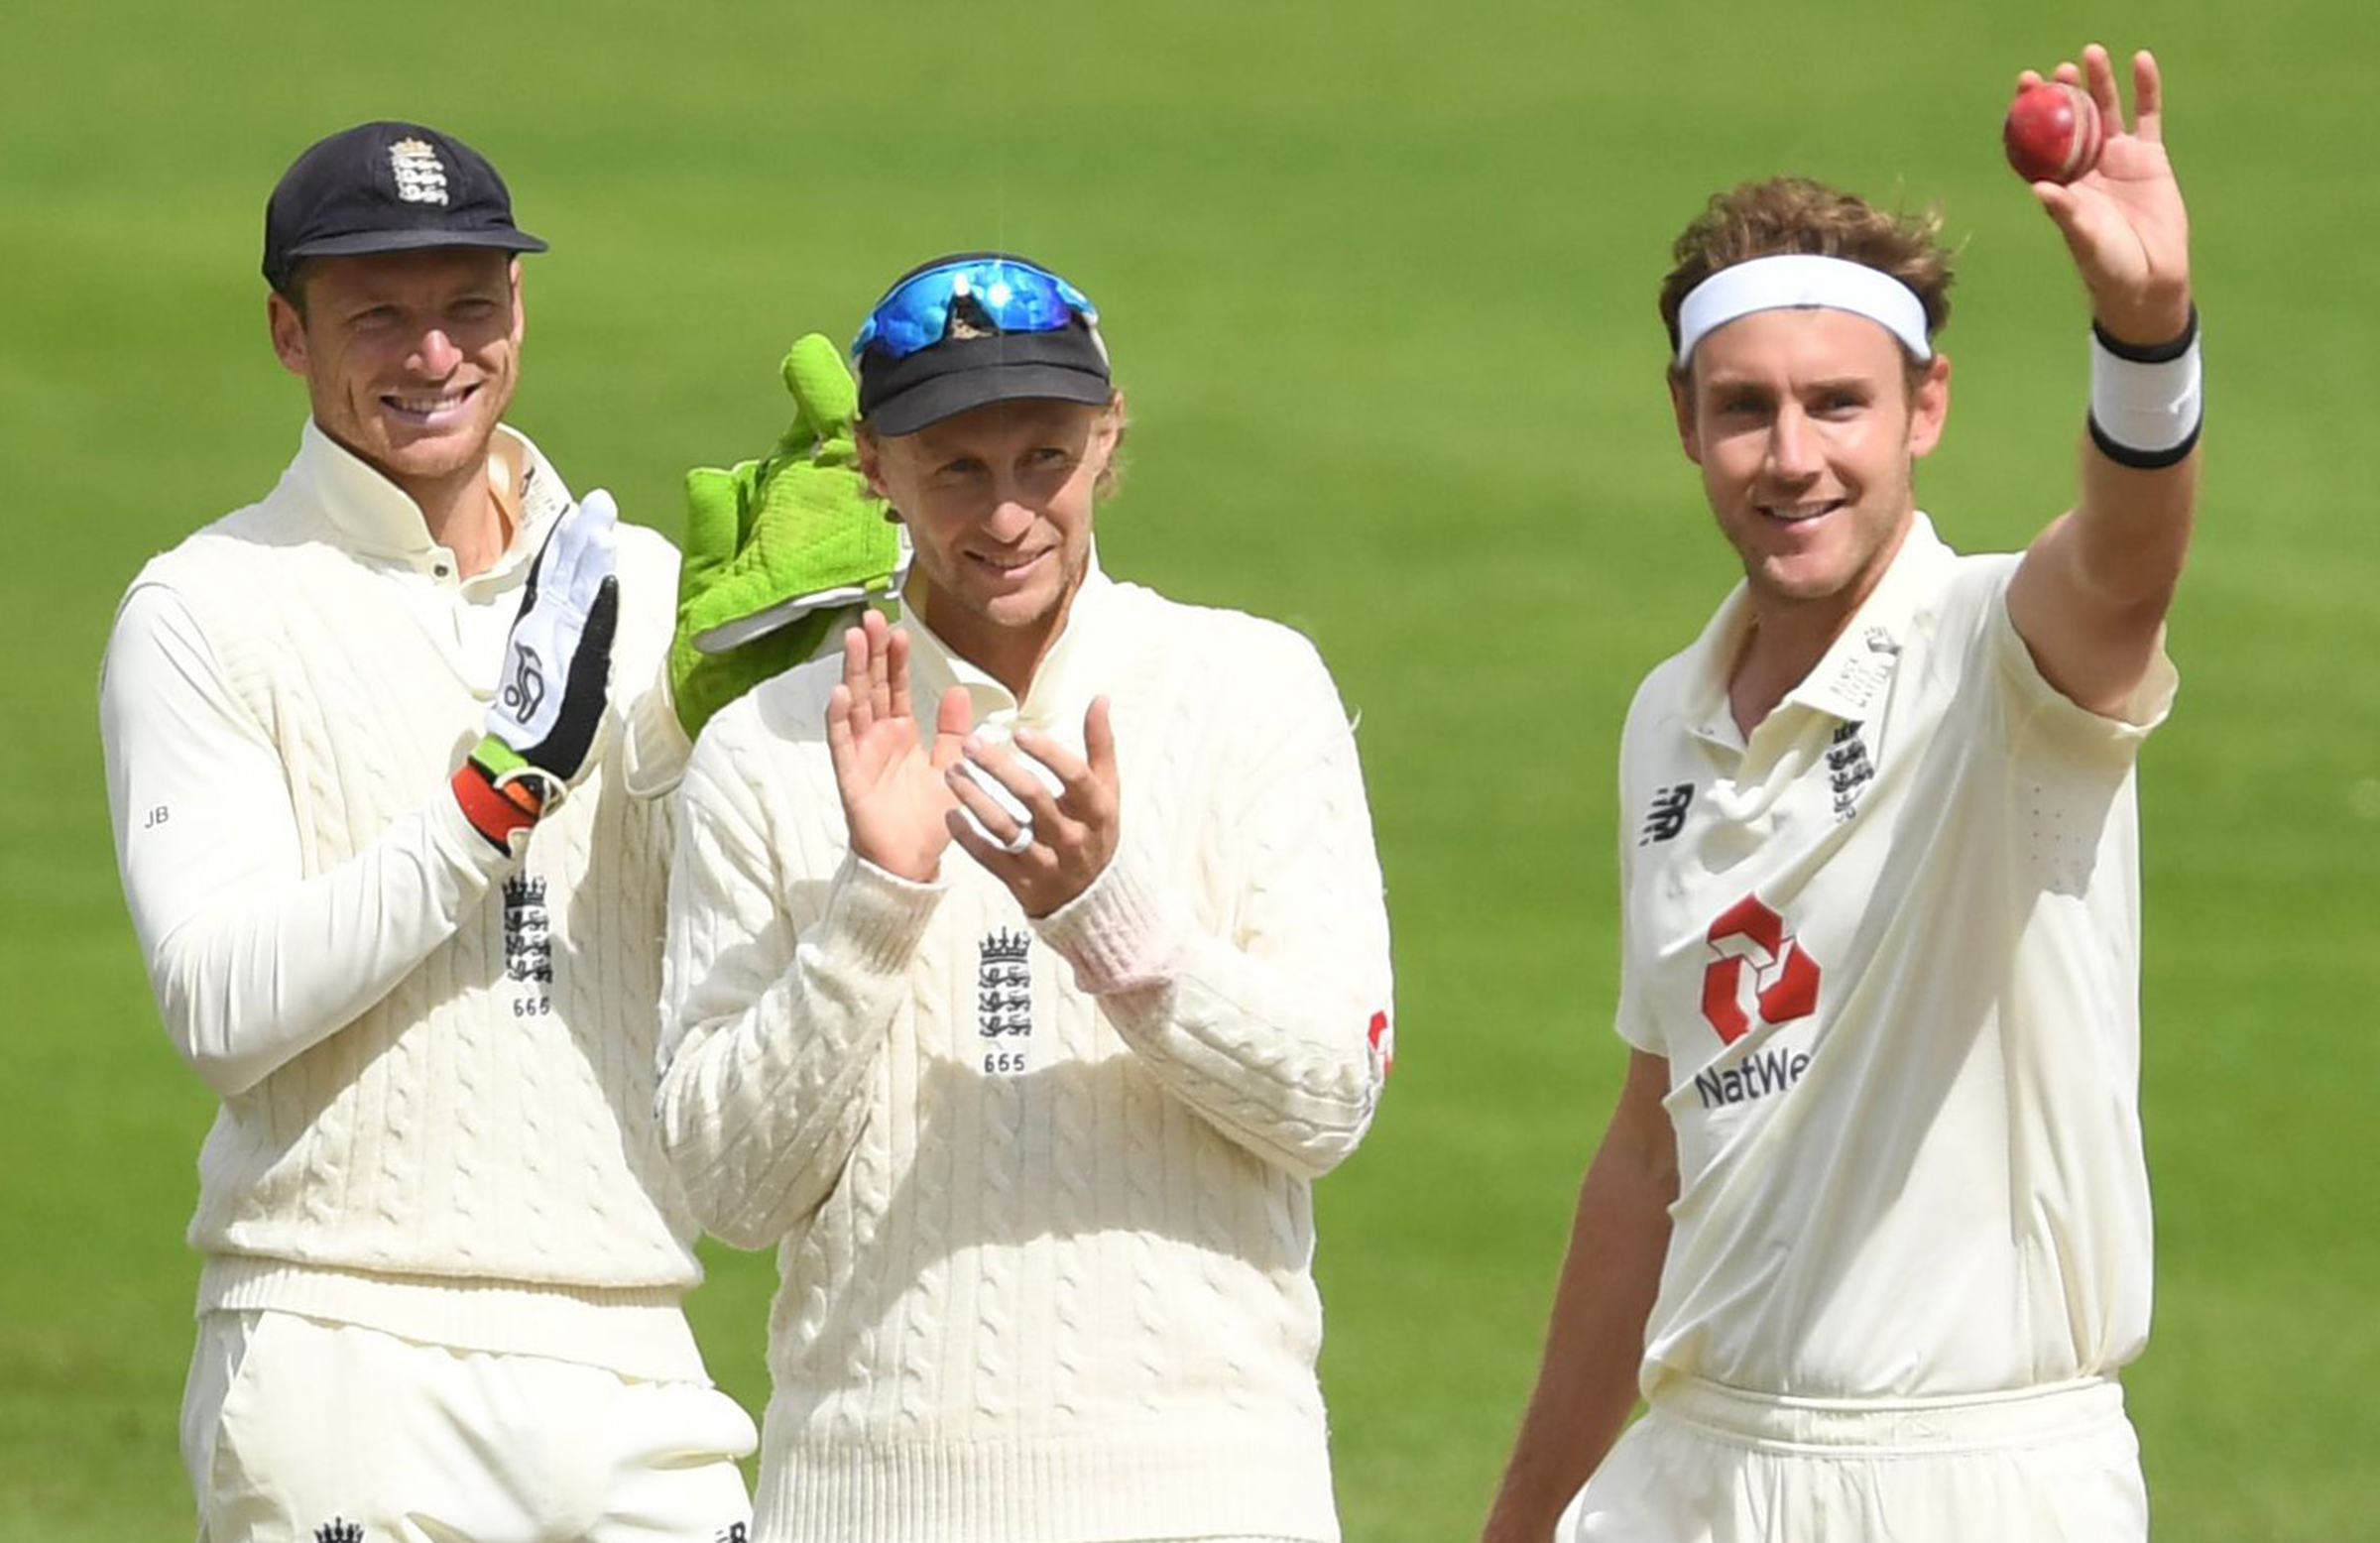 Broad reached the milestone in his 140th Test // Getty